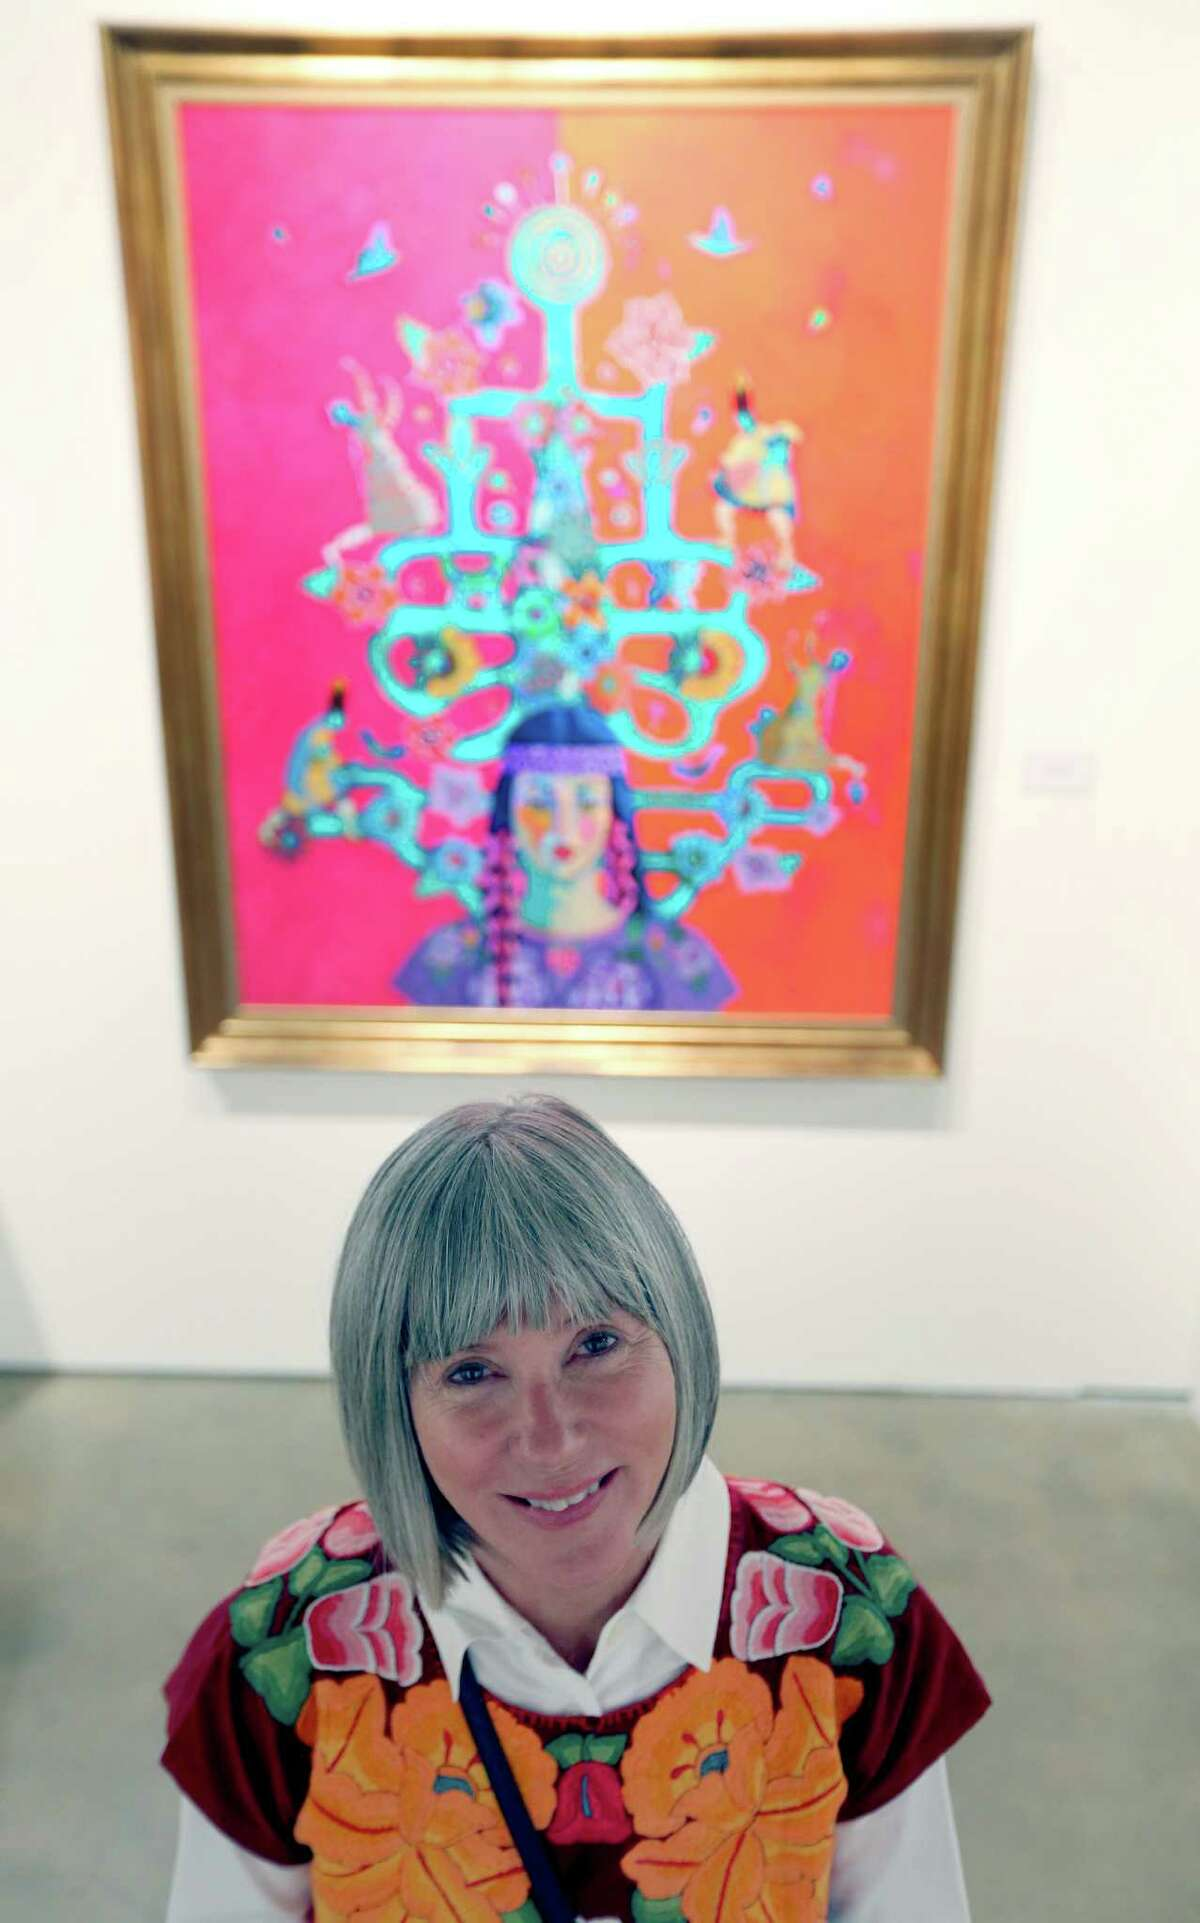 Kathy Sosa poses Oct. 6, 2015 in front of one of her paintings on display at the TAMU-SA Centro de Artes.